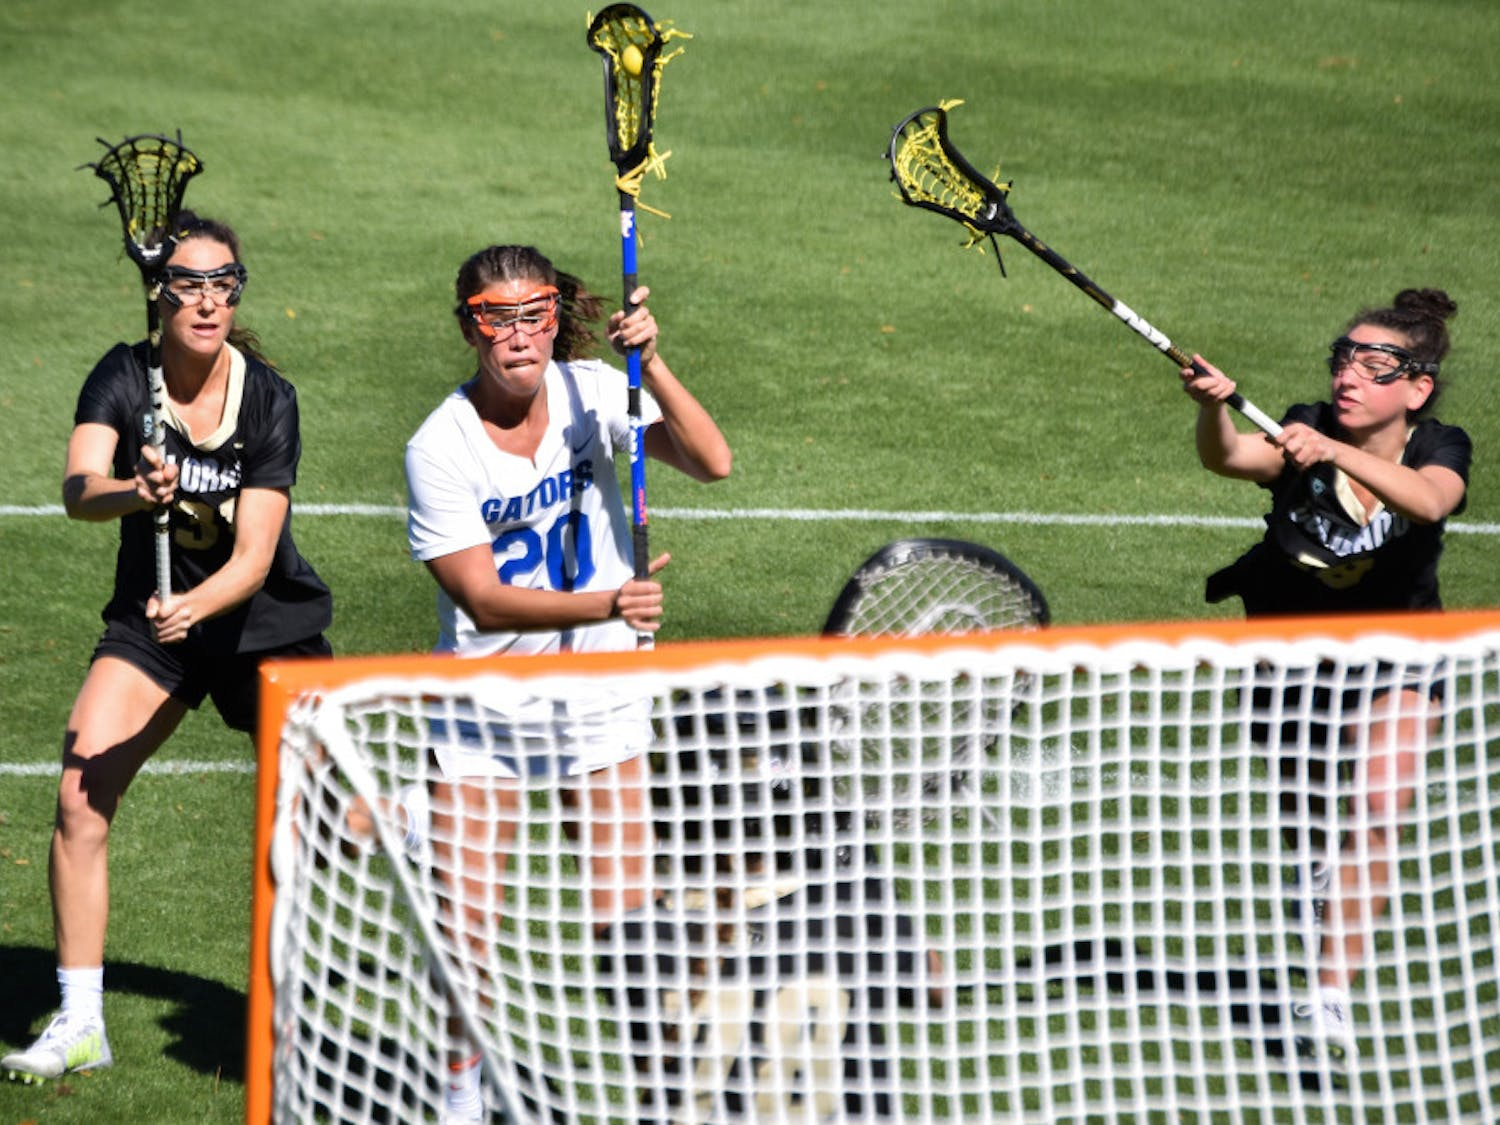 Brianna Harris scored two goals in the loss to Loyola.